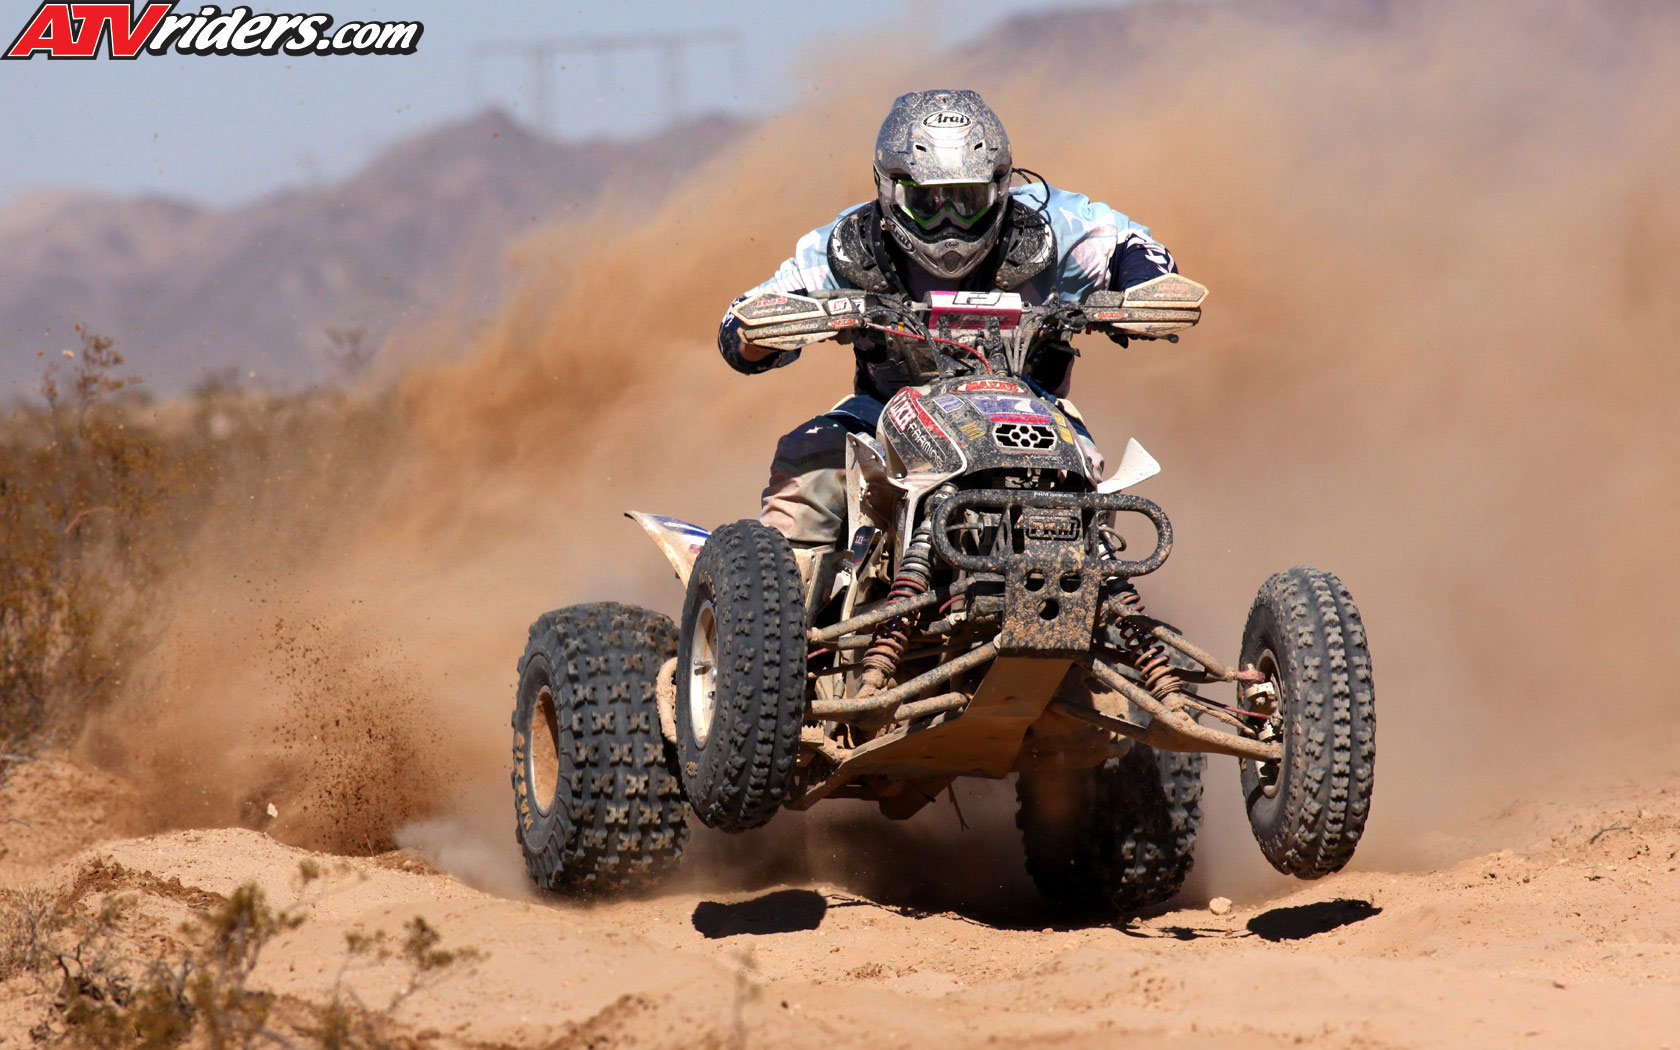 nick nelson on his honda trx 450r at best in desert racing